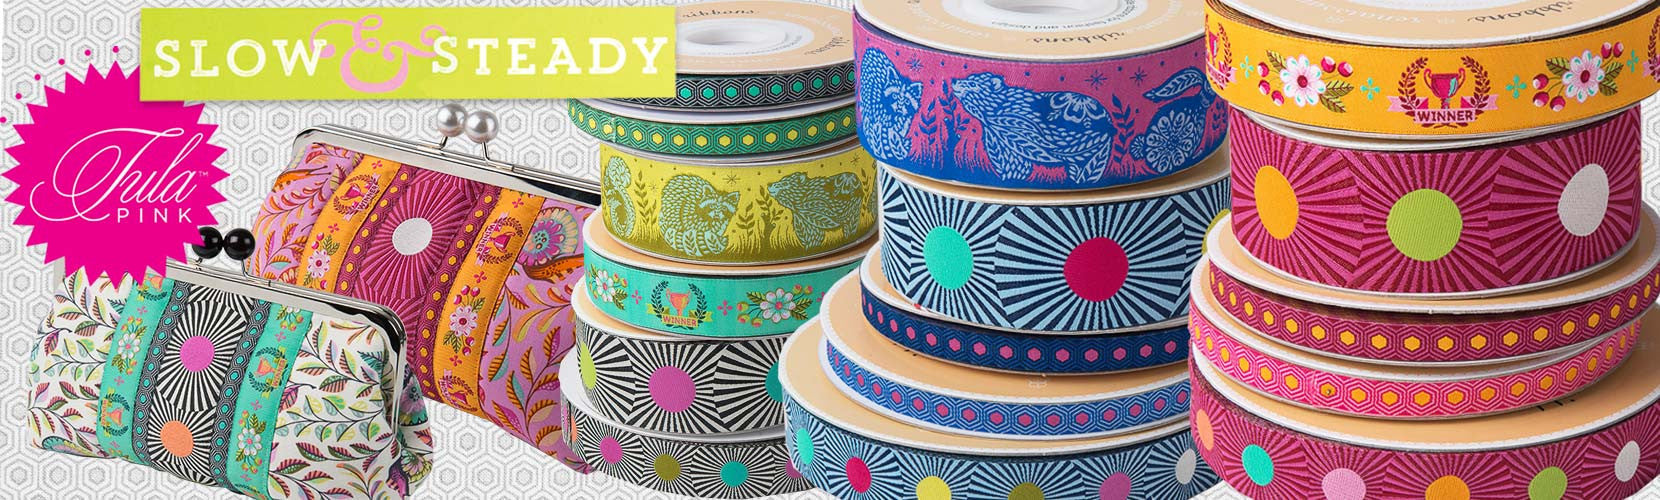 Wholesale Ribbon Supplier